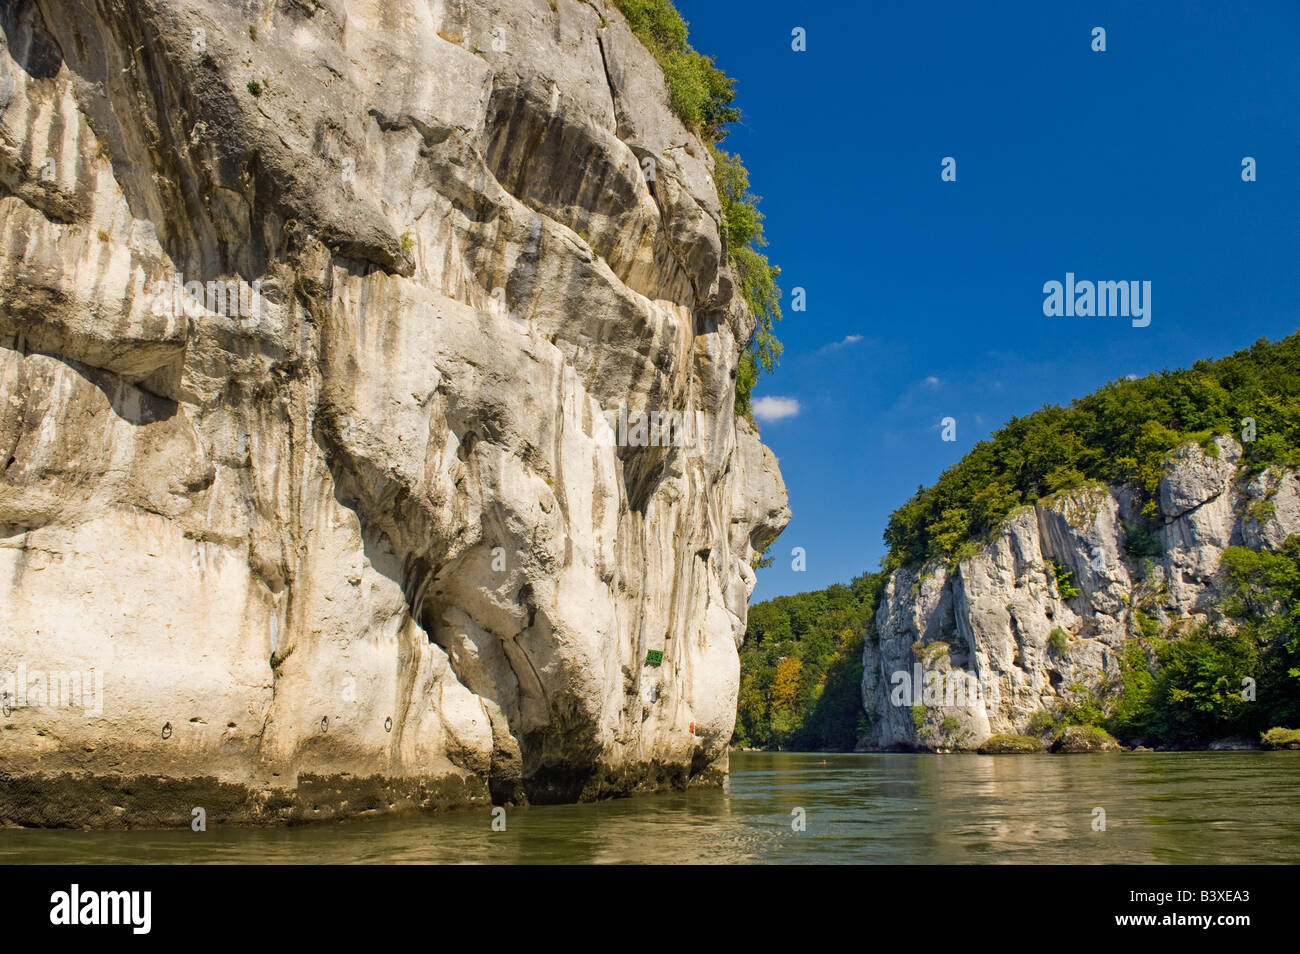 narrowing of the Danube weltenburg donaudurchbruch danube river The Danube breaks through the cliffs - Stock Image